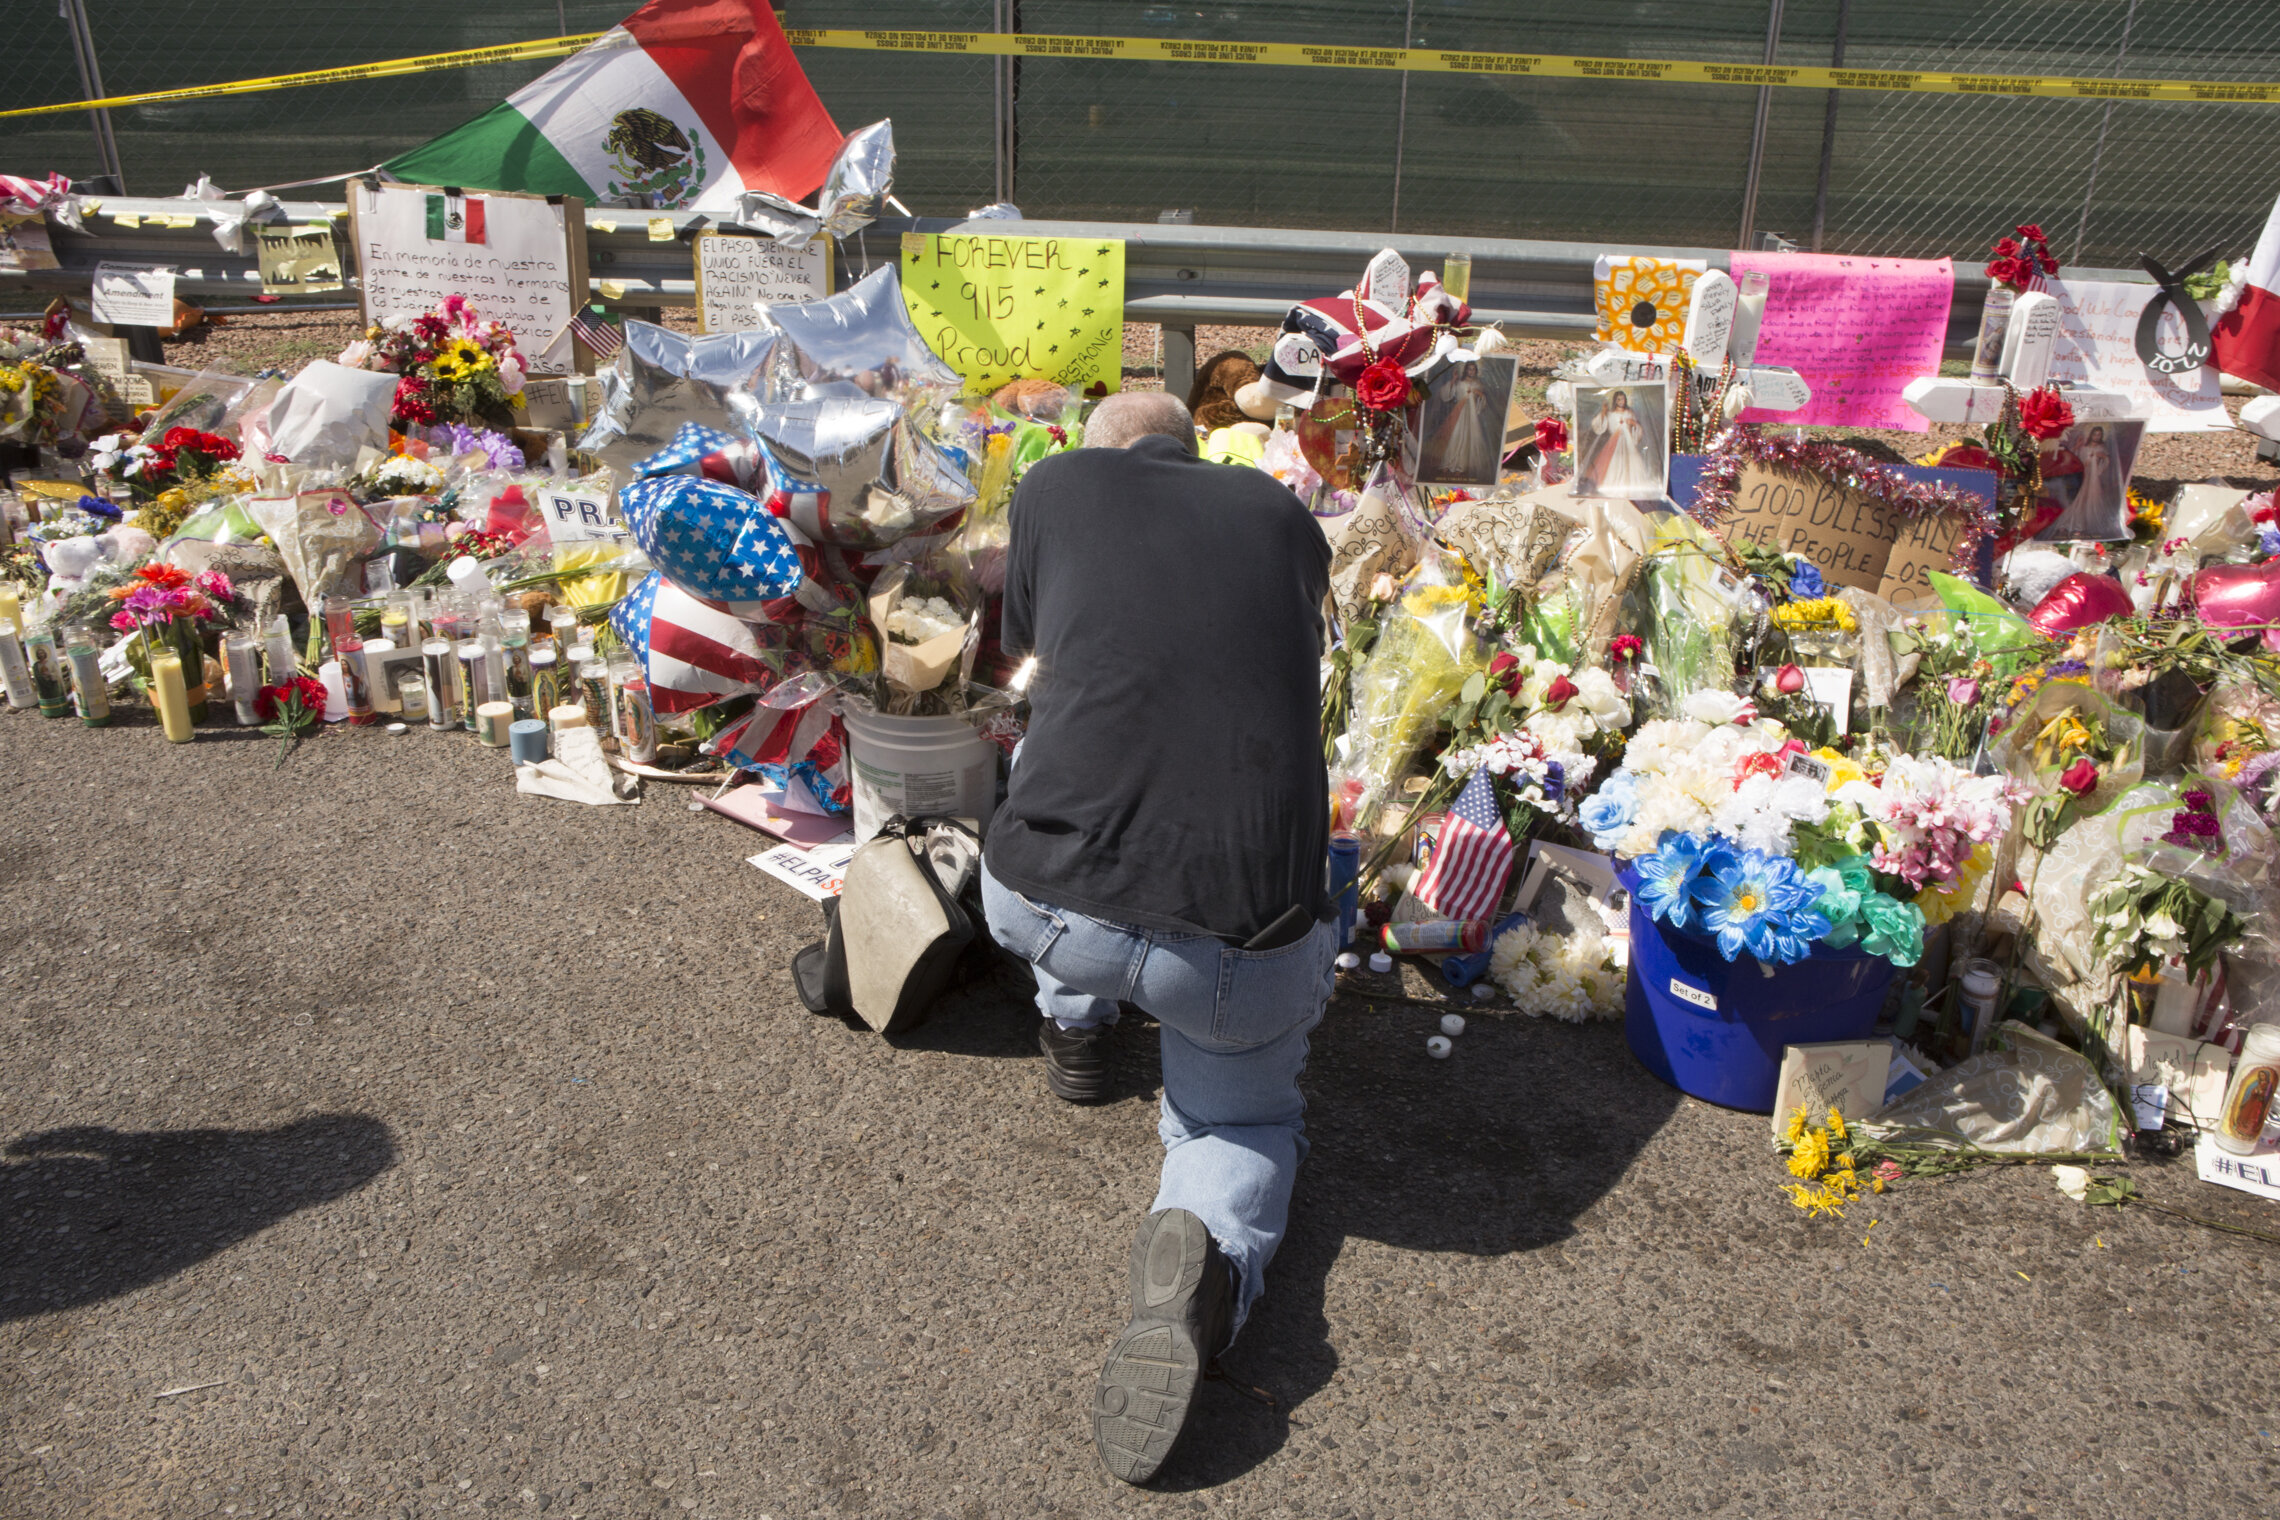 Figure 2: Mourning after the El Paso mass shooting. Photo by Peter Svarzbein.